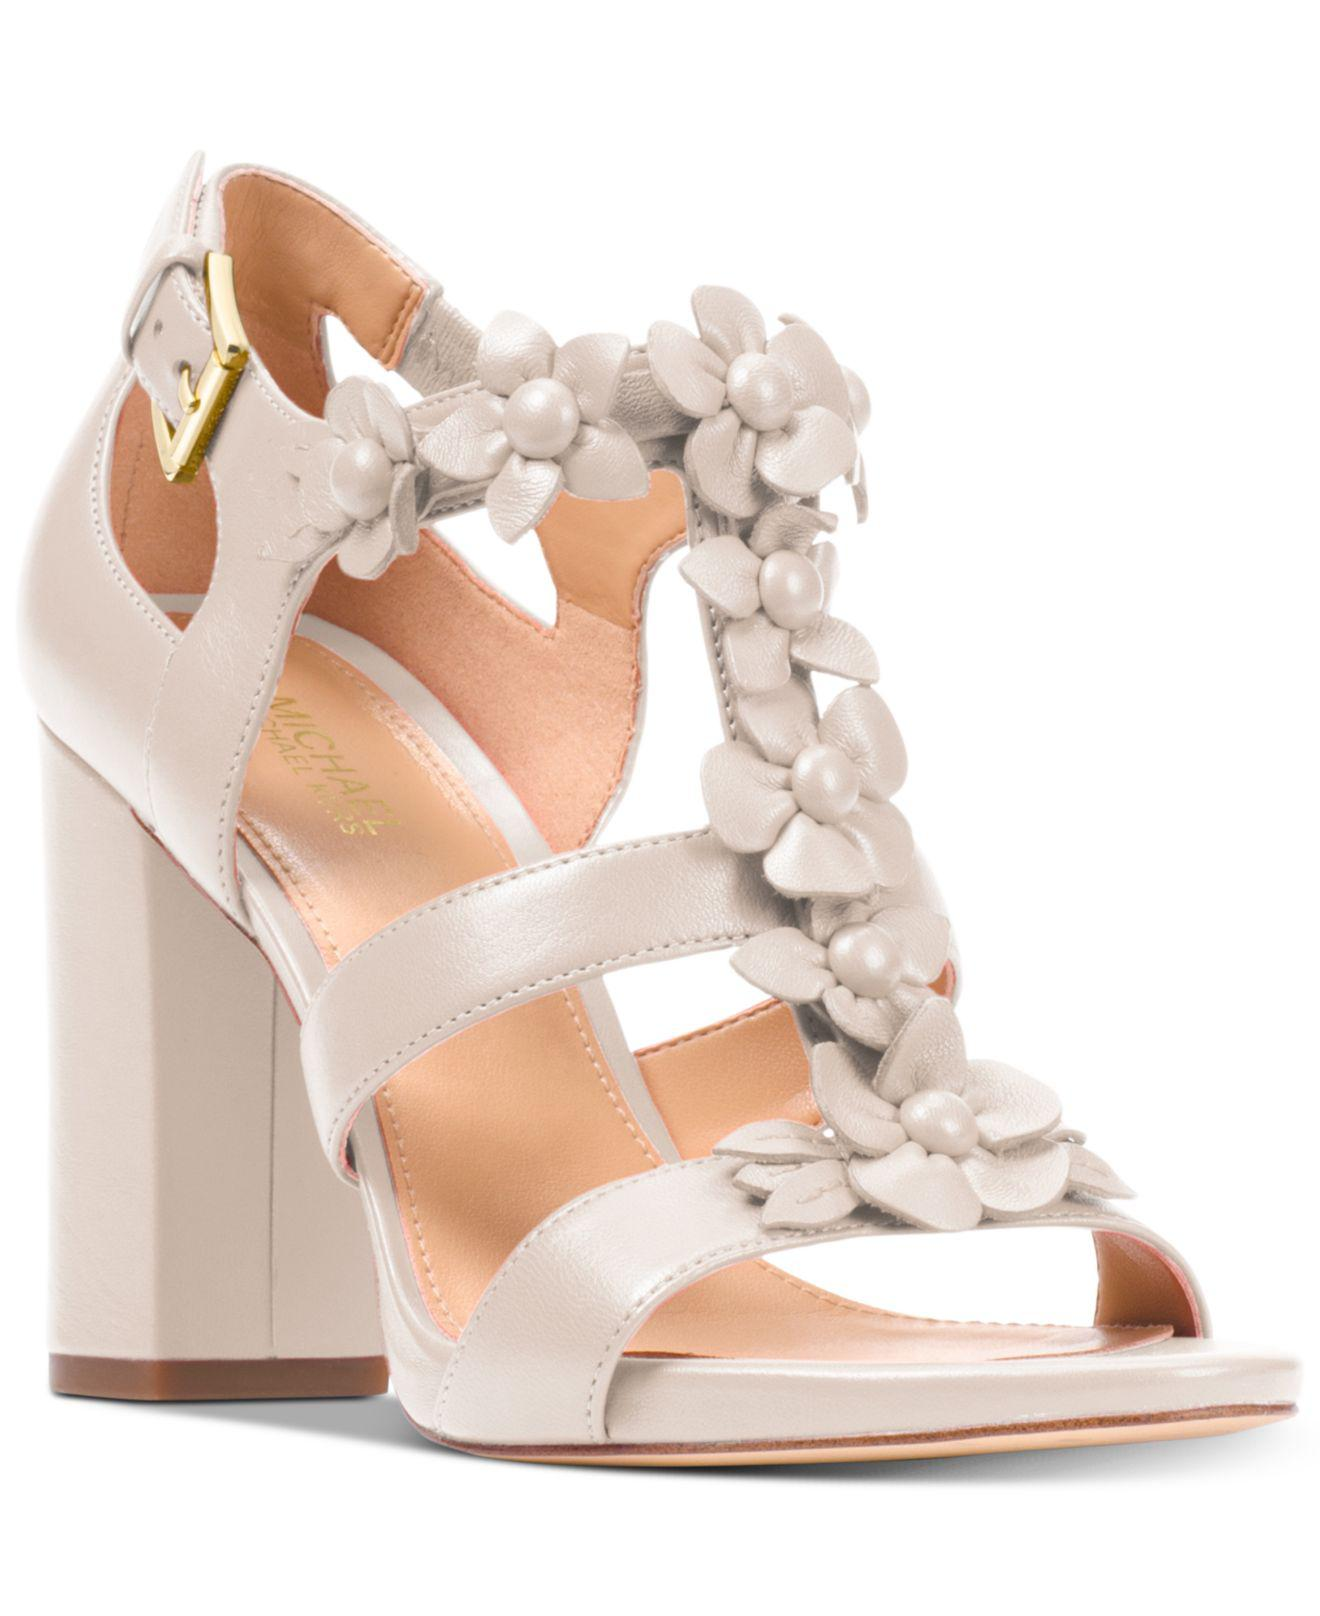 Tricia Flower Embellished T-Strap Block Heel Dress Sandals